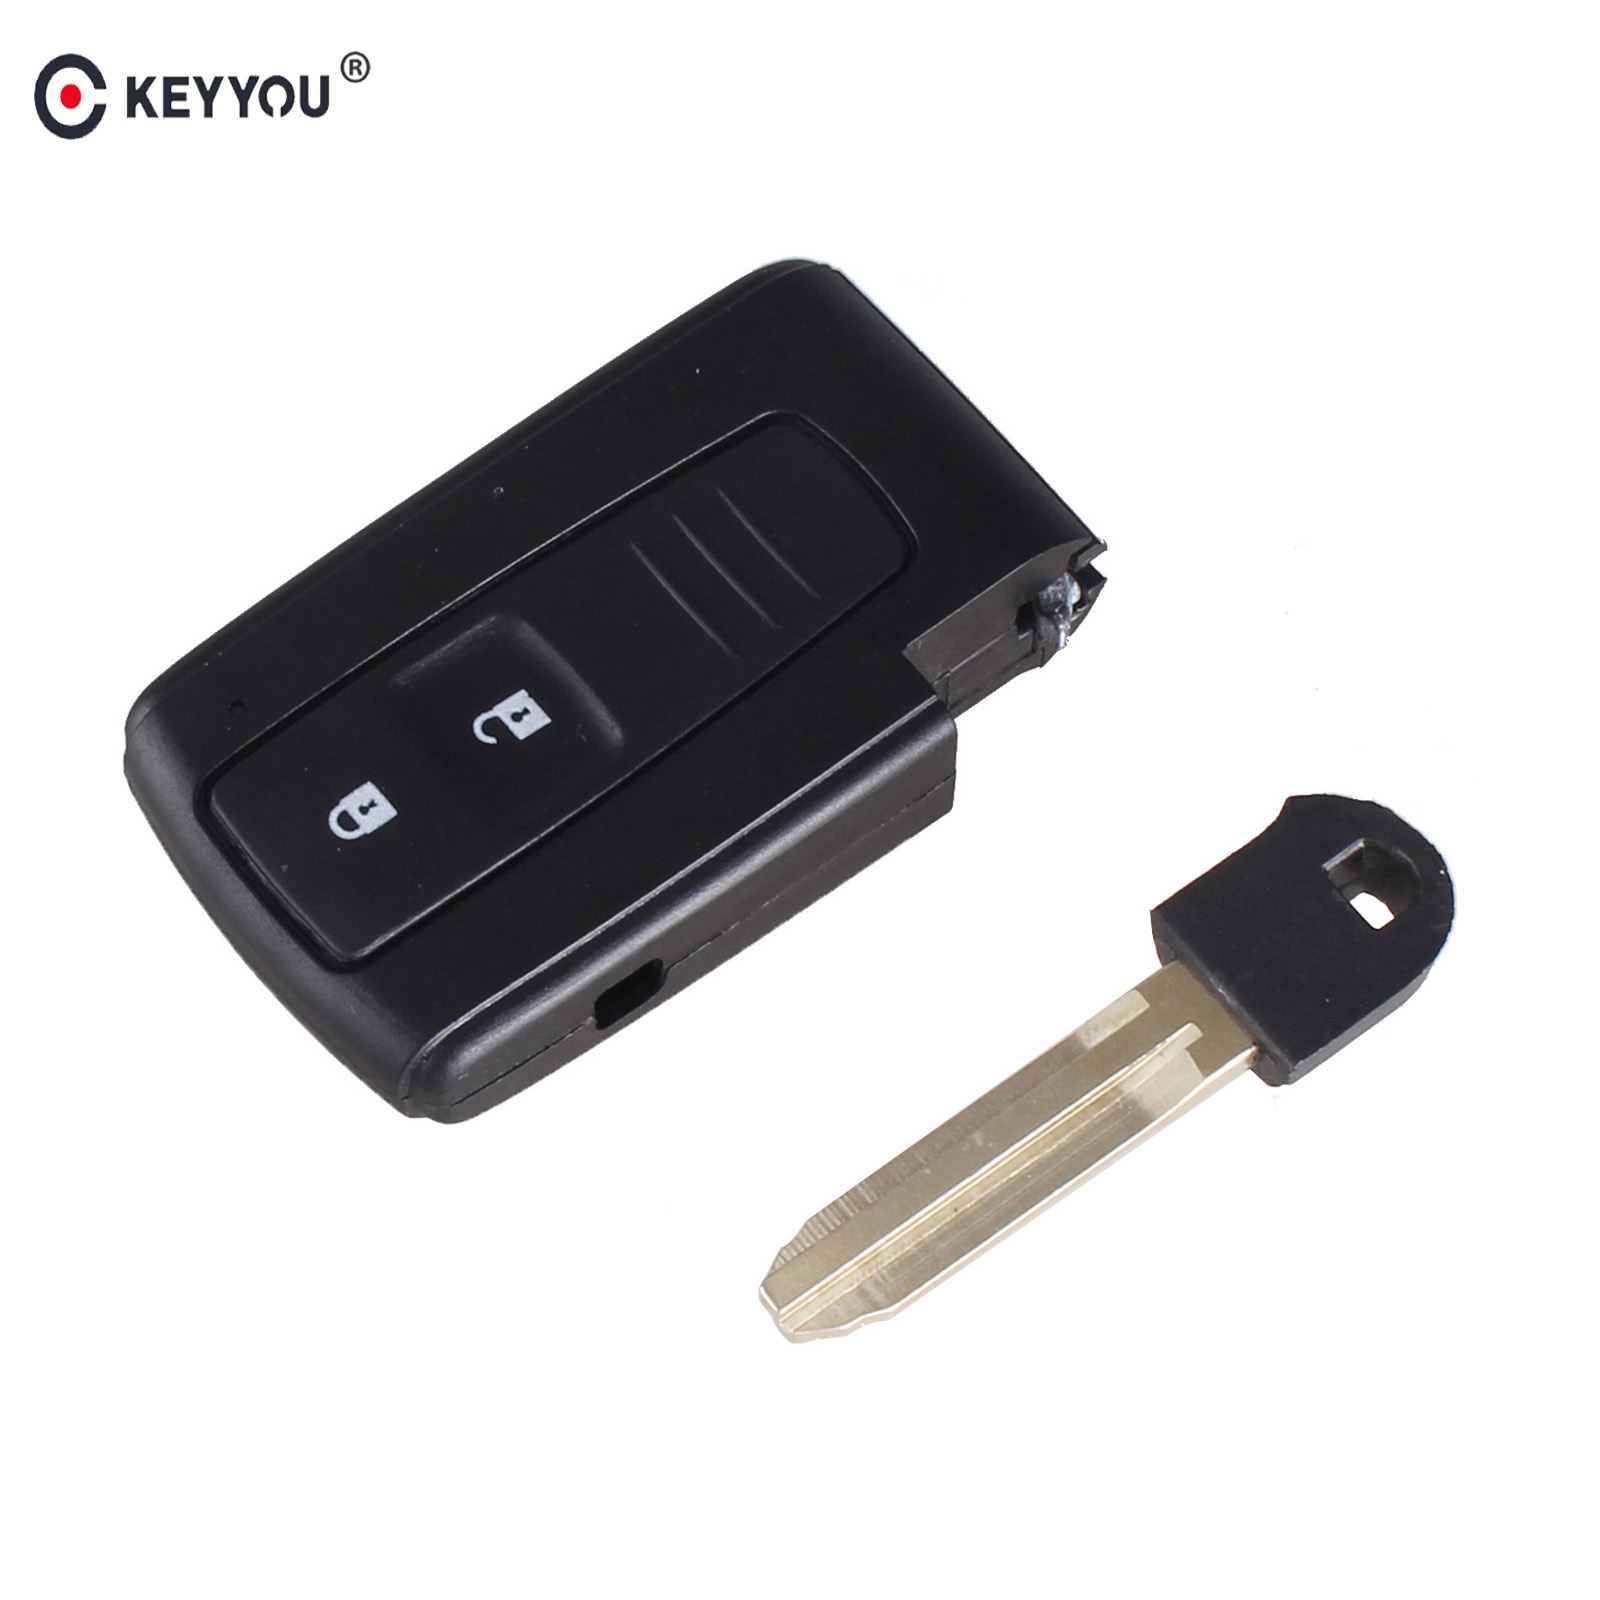 KEYYOU 2 BUTTON REMOTE KEY CASE FOR TOYOTA PRIUS COROLLA VERSO TOY43 BLADE